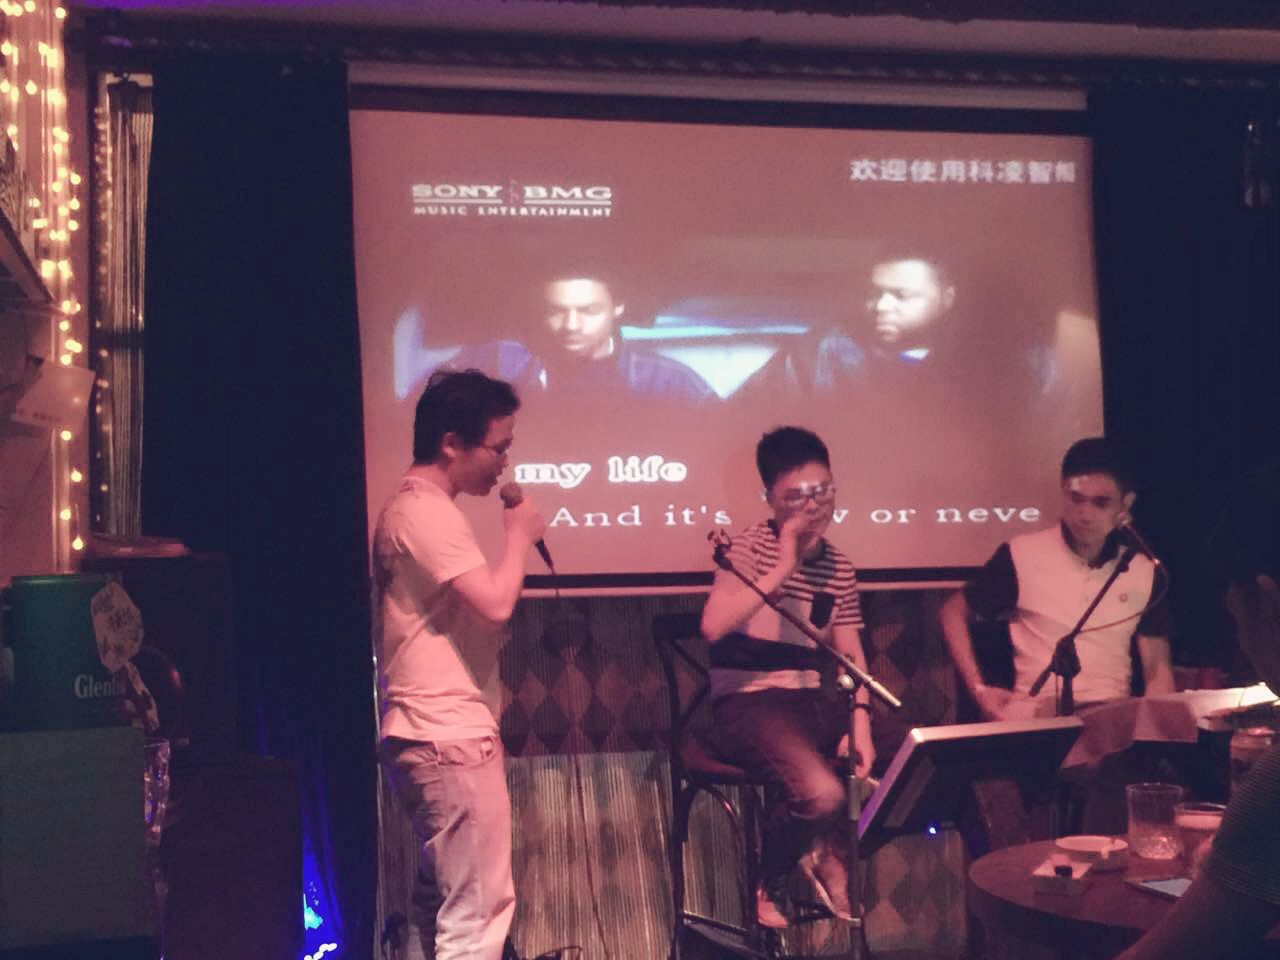 """it's my life"" , my song tonight.  welcome to visit China for my song,not for business .hahaha"